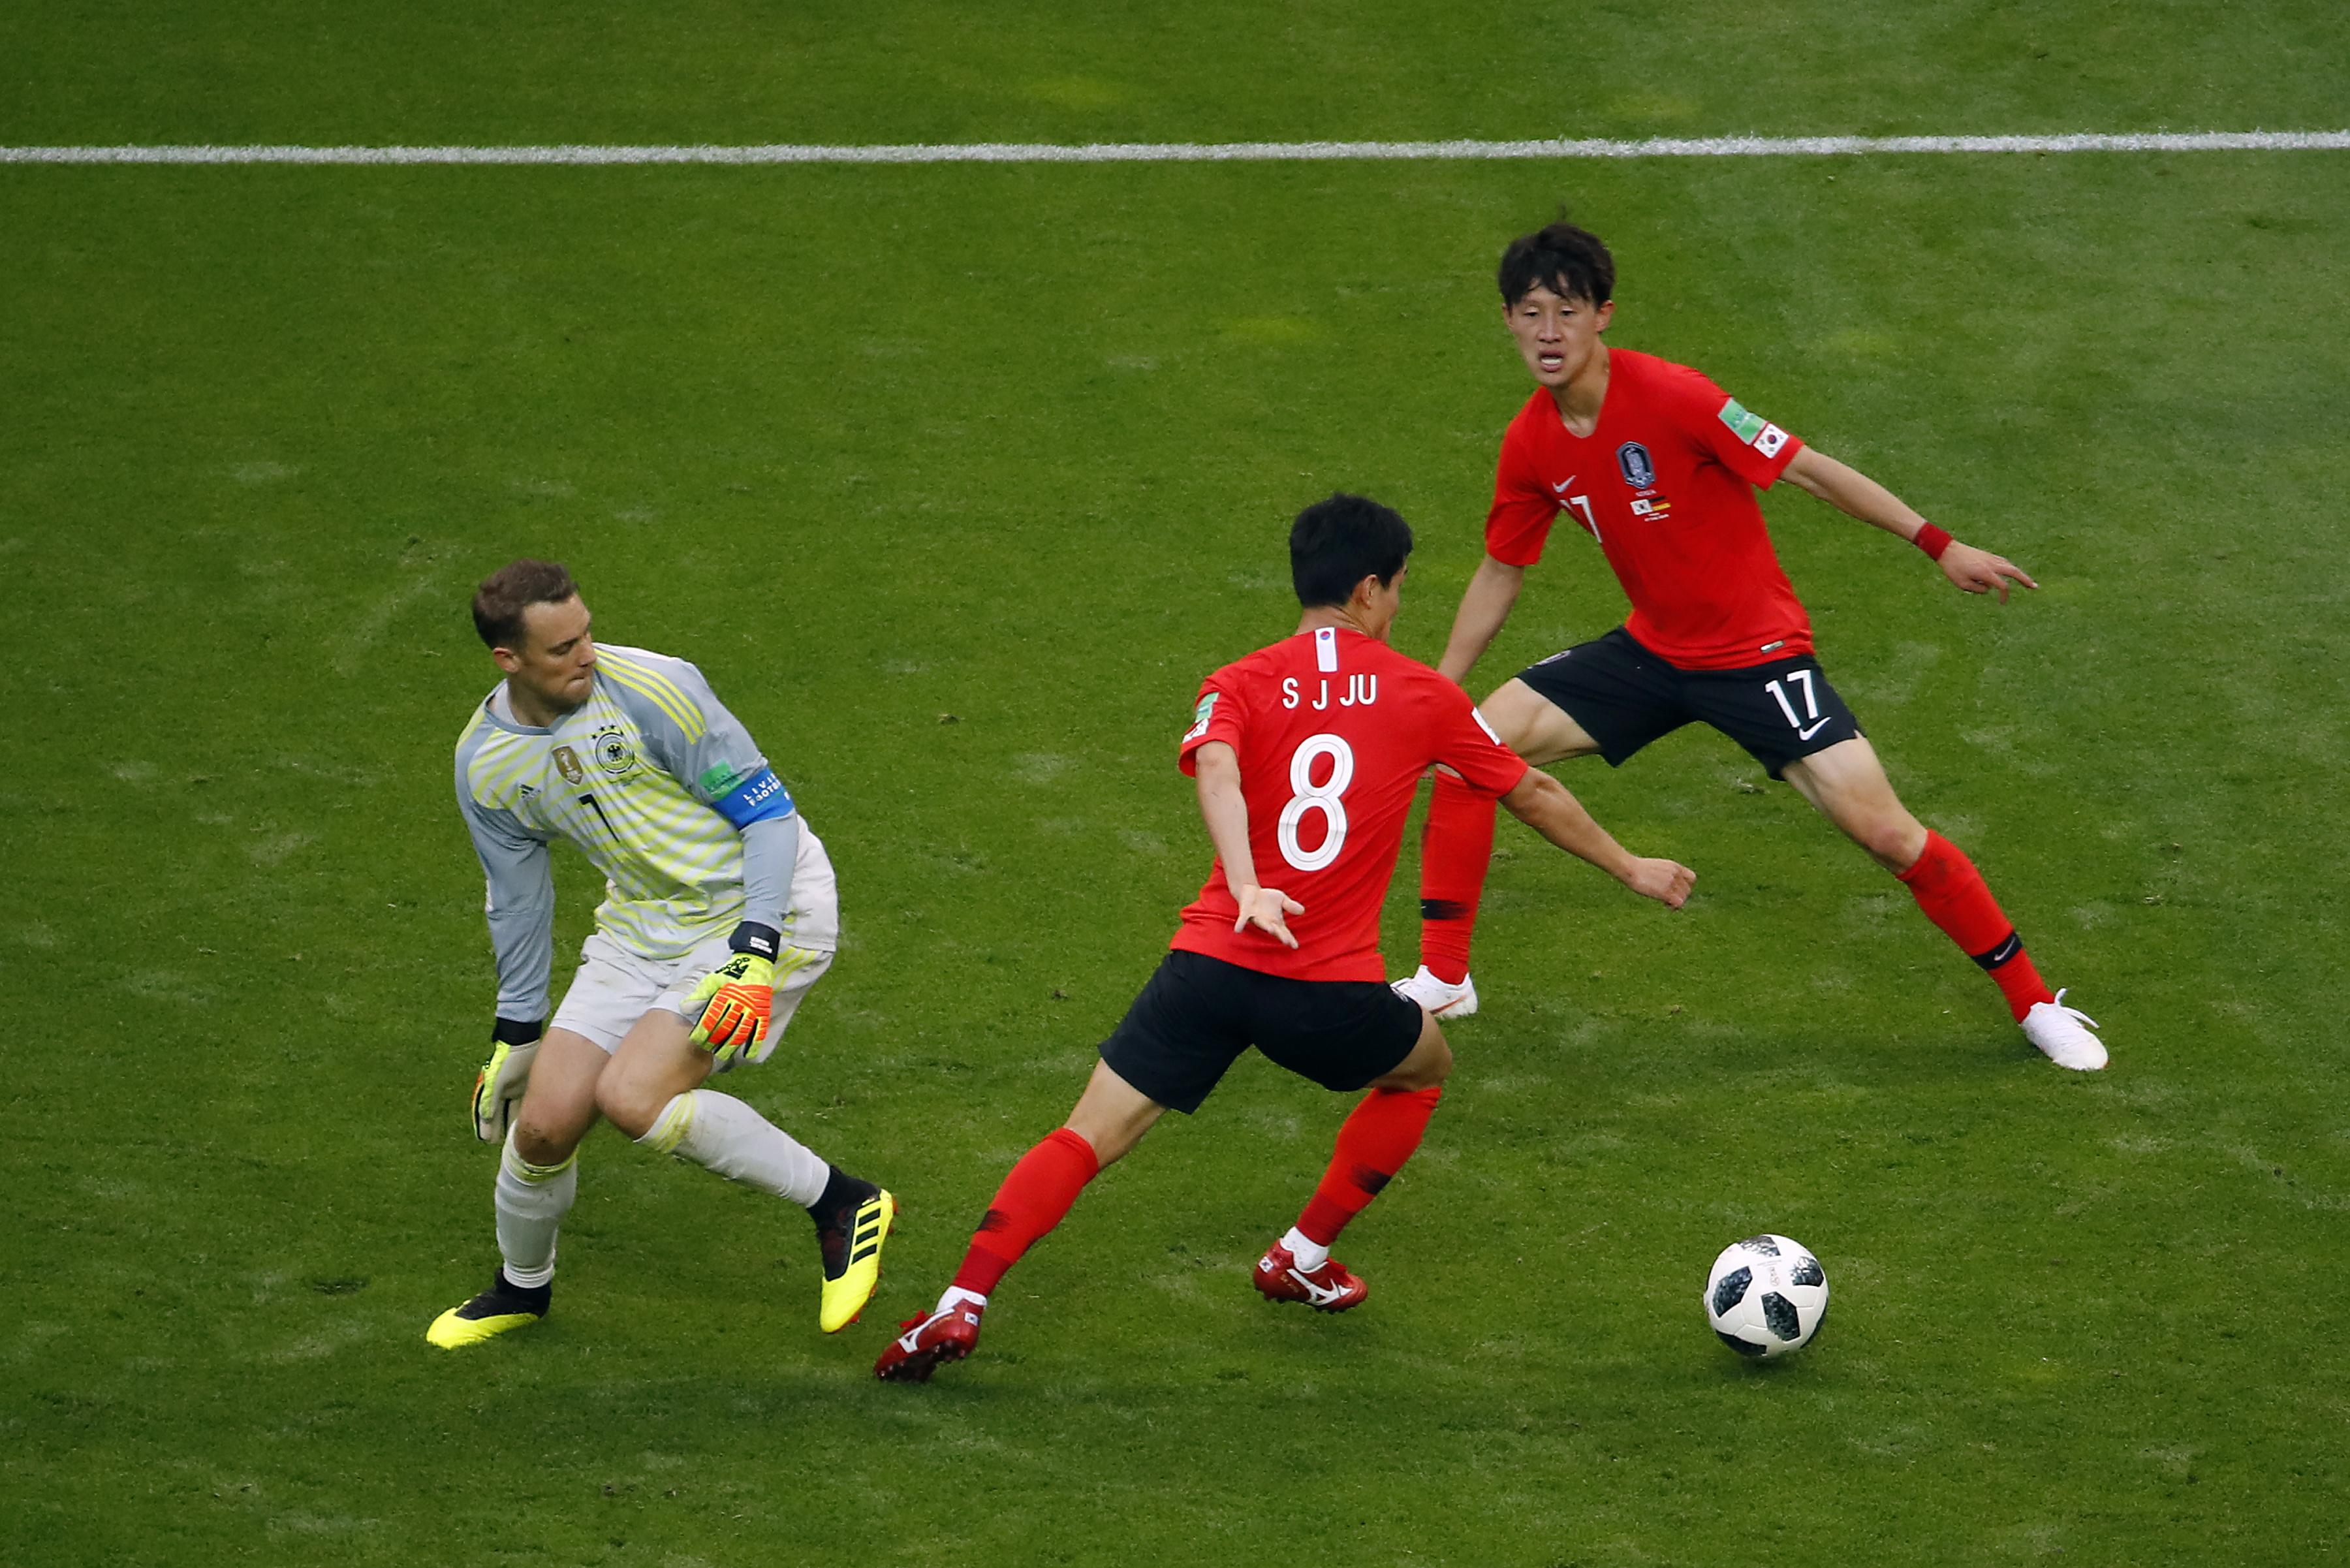 Neuer lost the ball in the dying moments against Korea